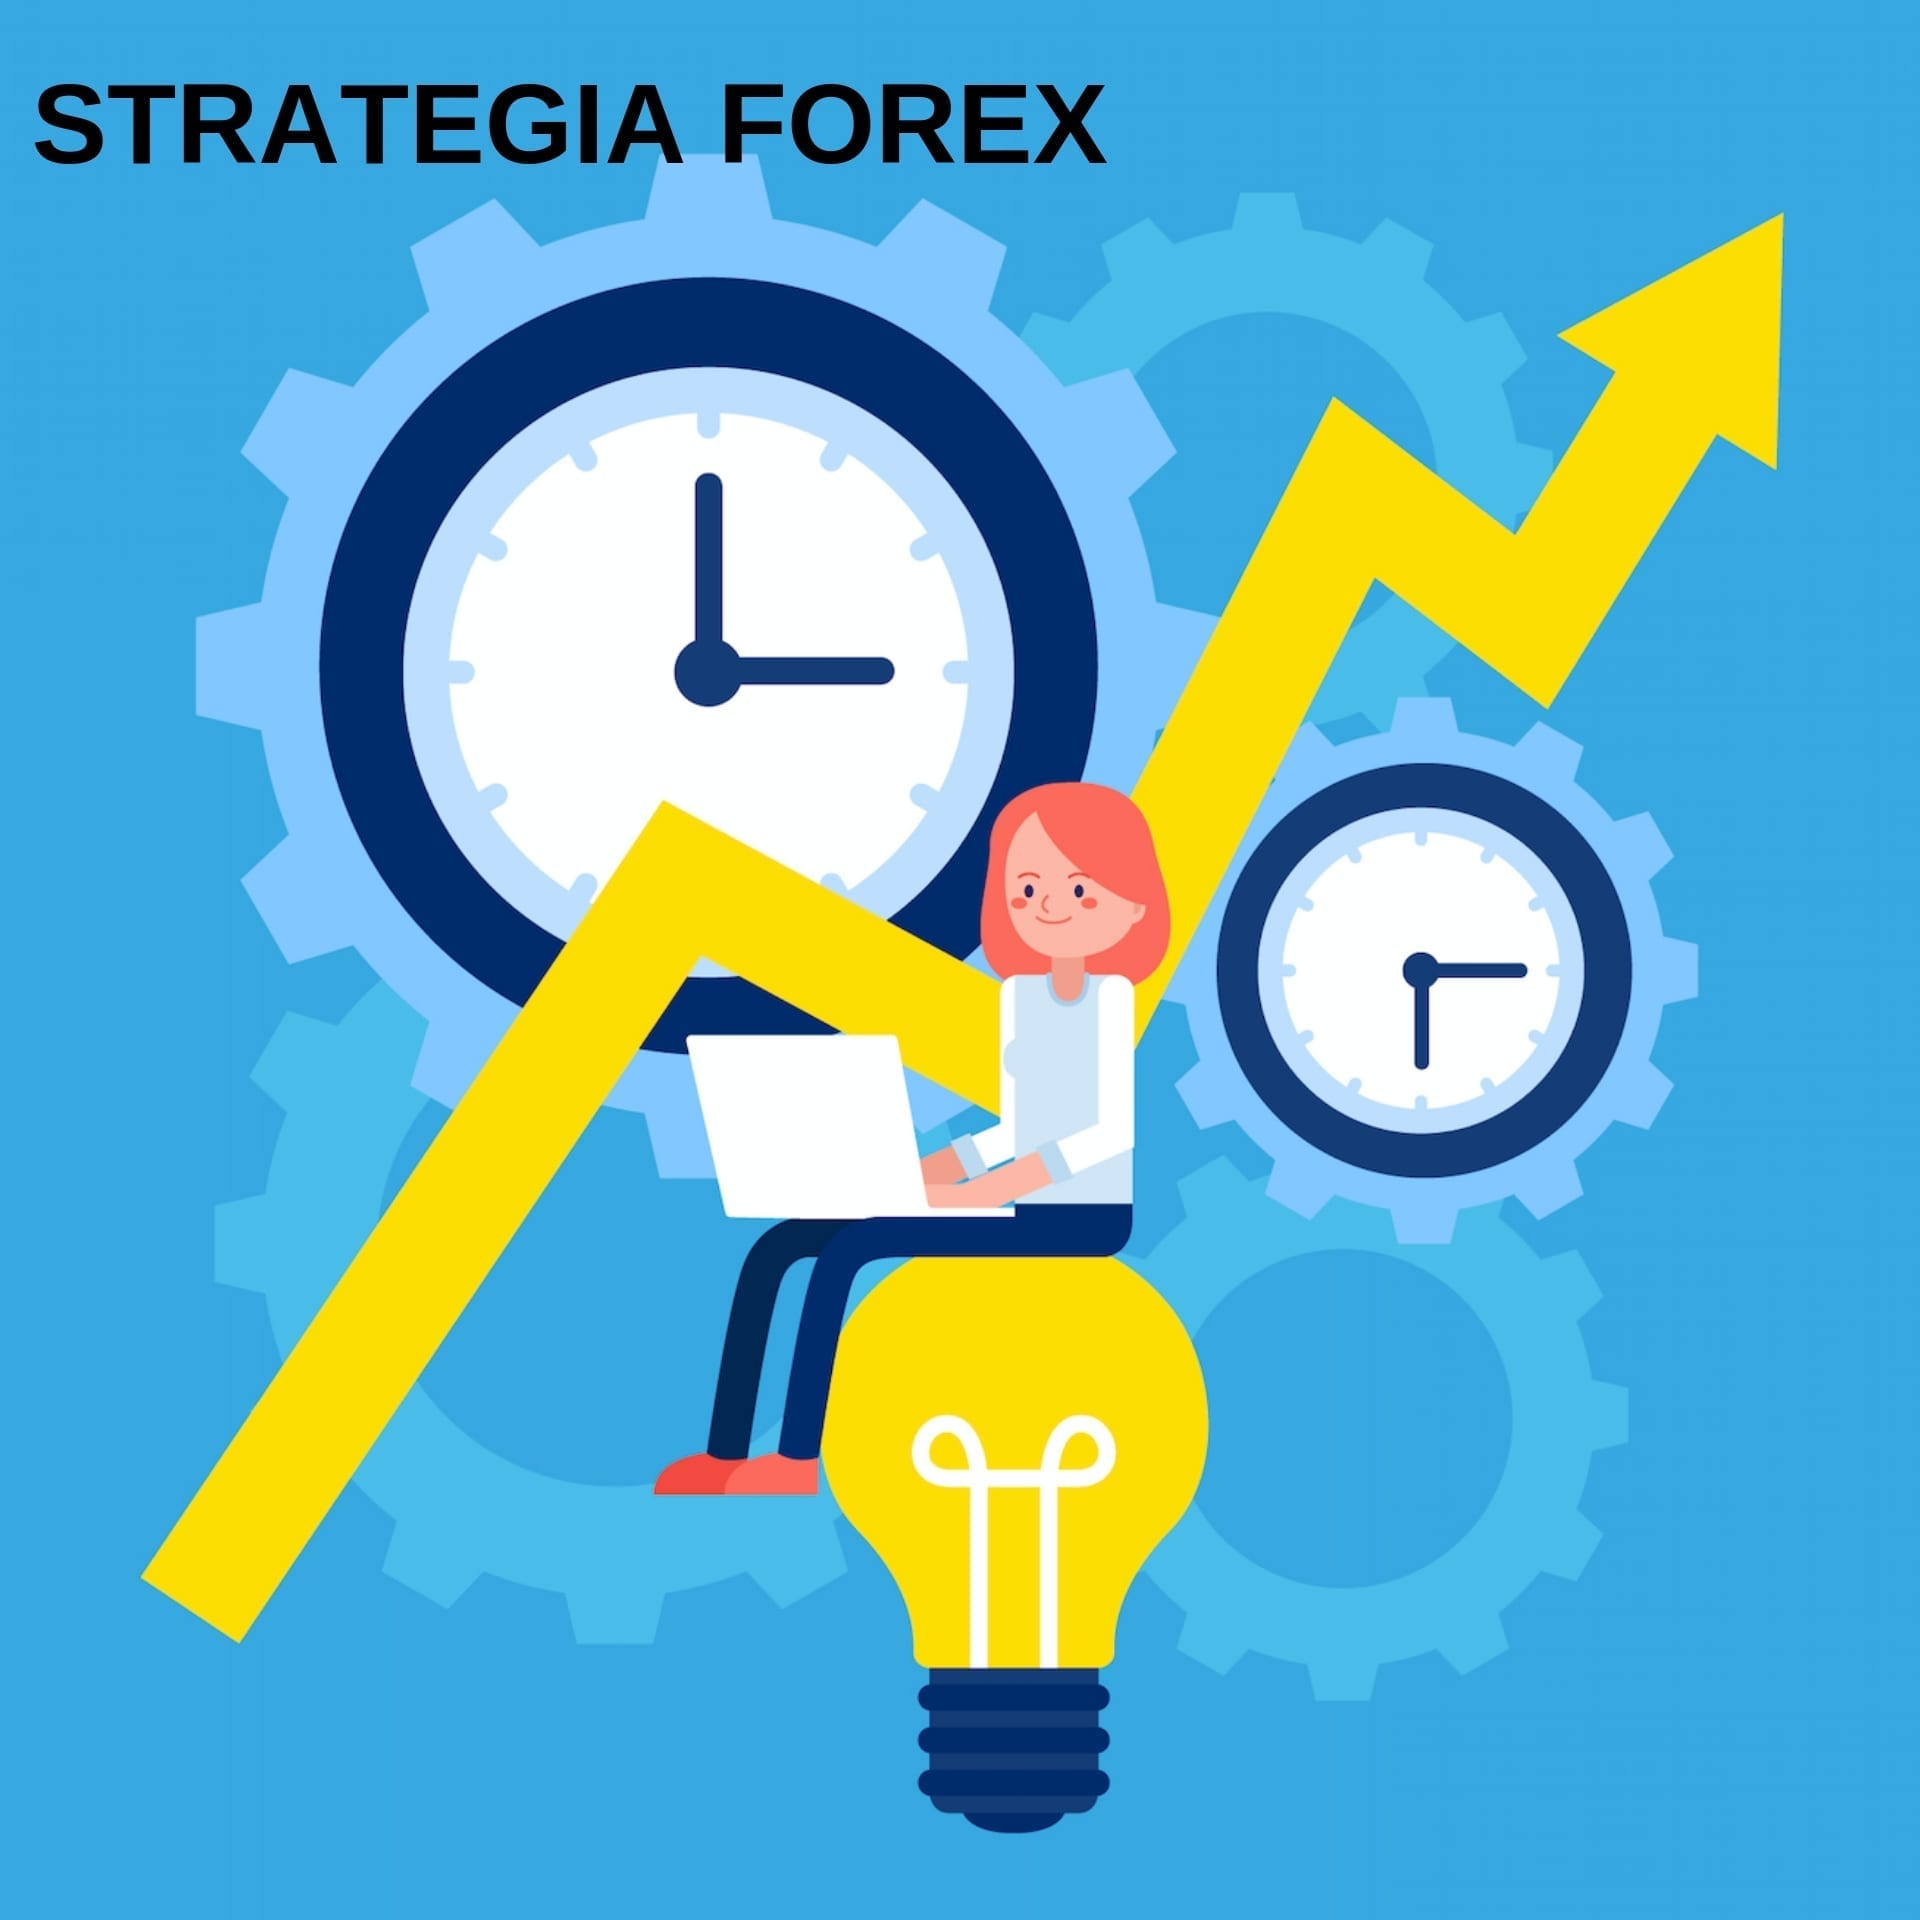 STRATEGIA DI FOREX INFALLIBILE